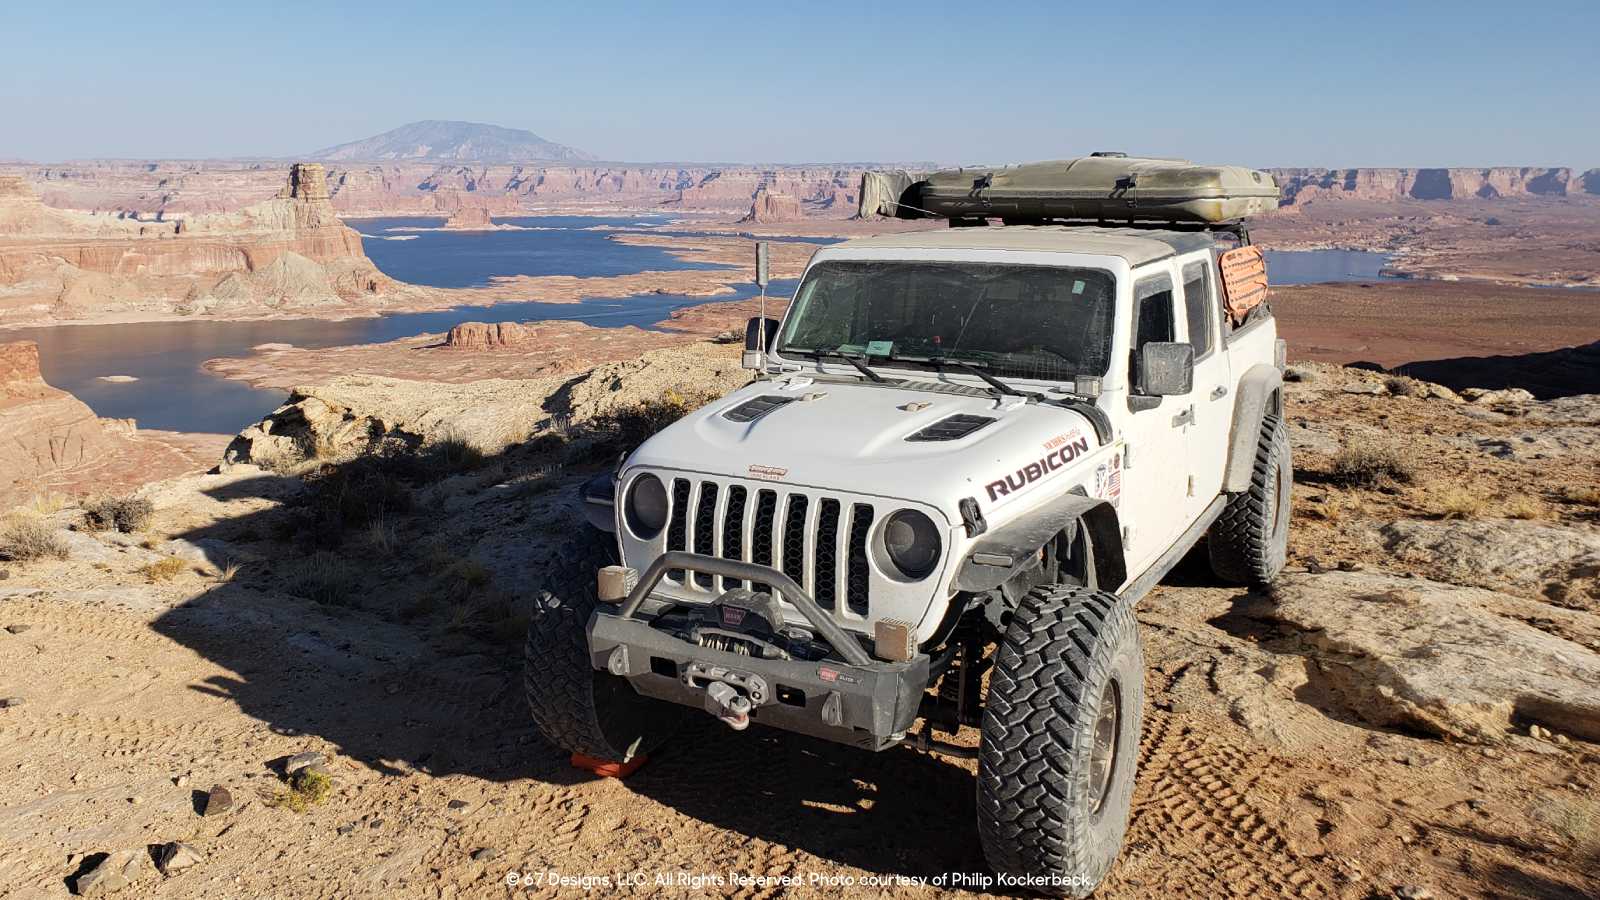 David's Jeep out in the desert